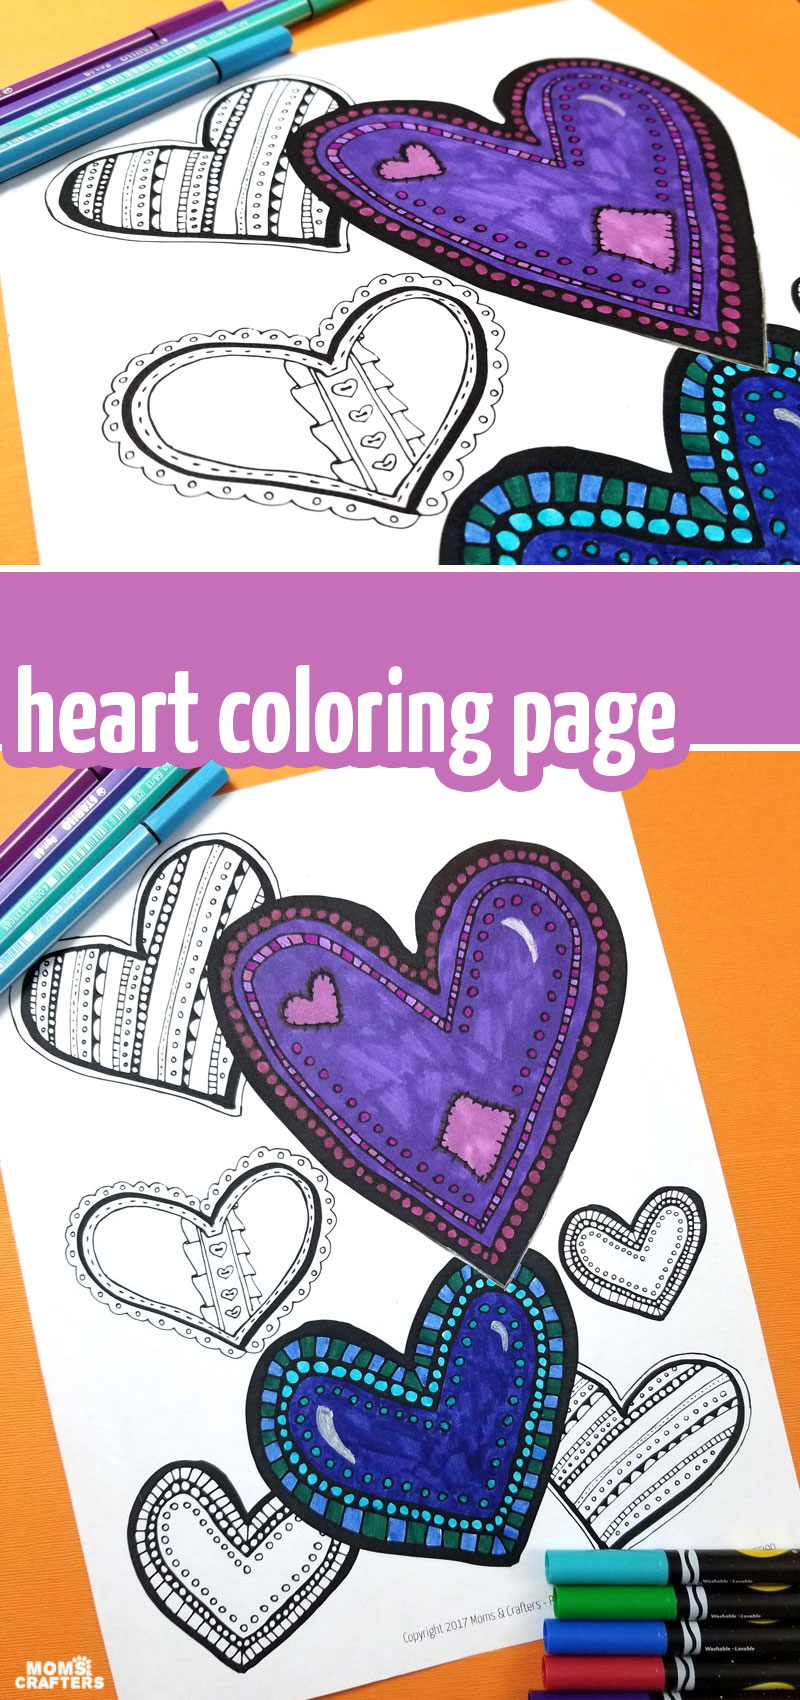 Click to download your free printable heart coloring page for teens or adults! This fun free printable adult colouring page is perfect for valentine's day